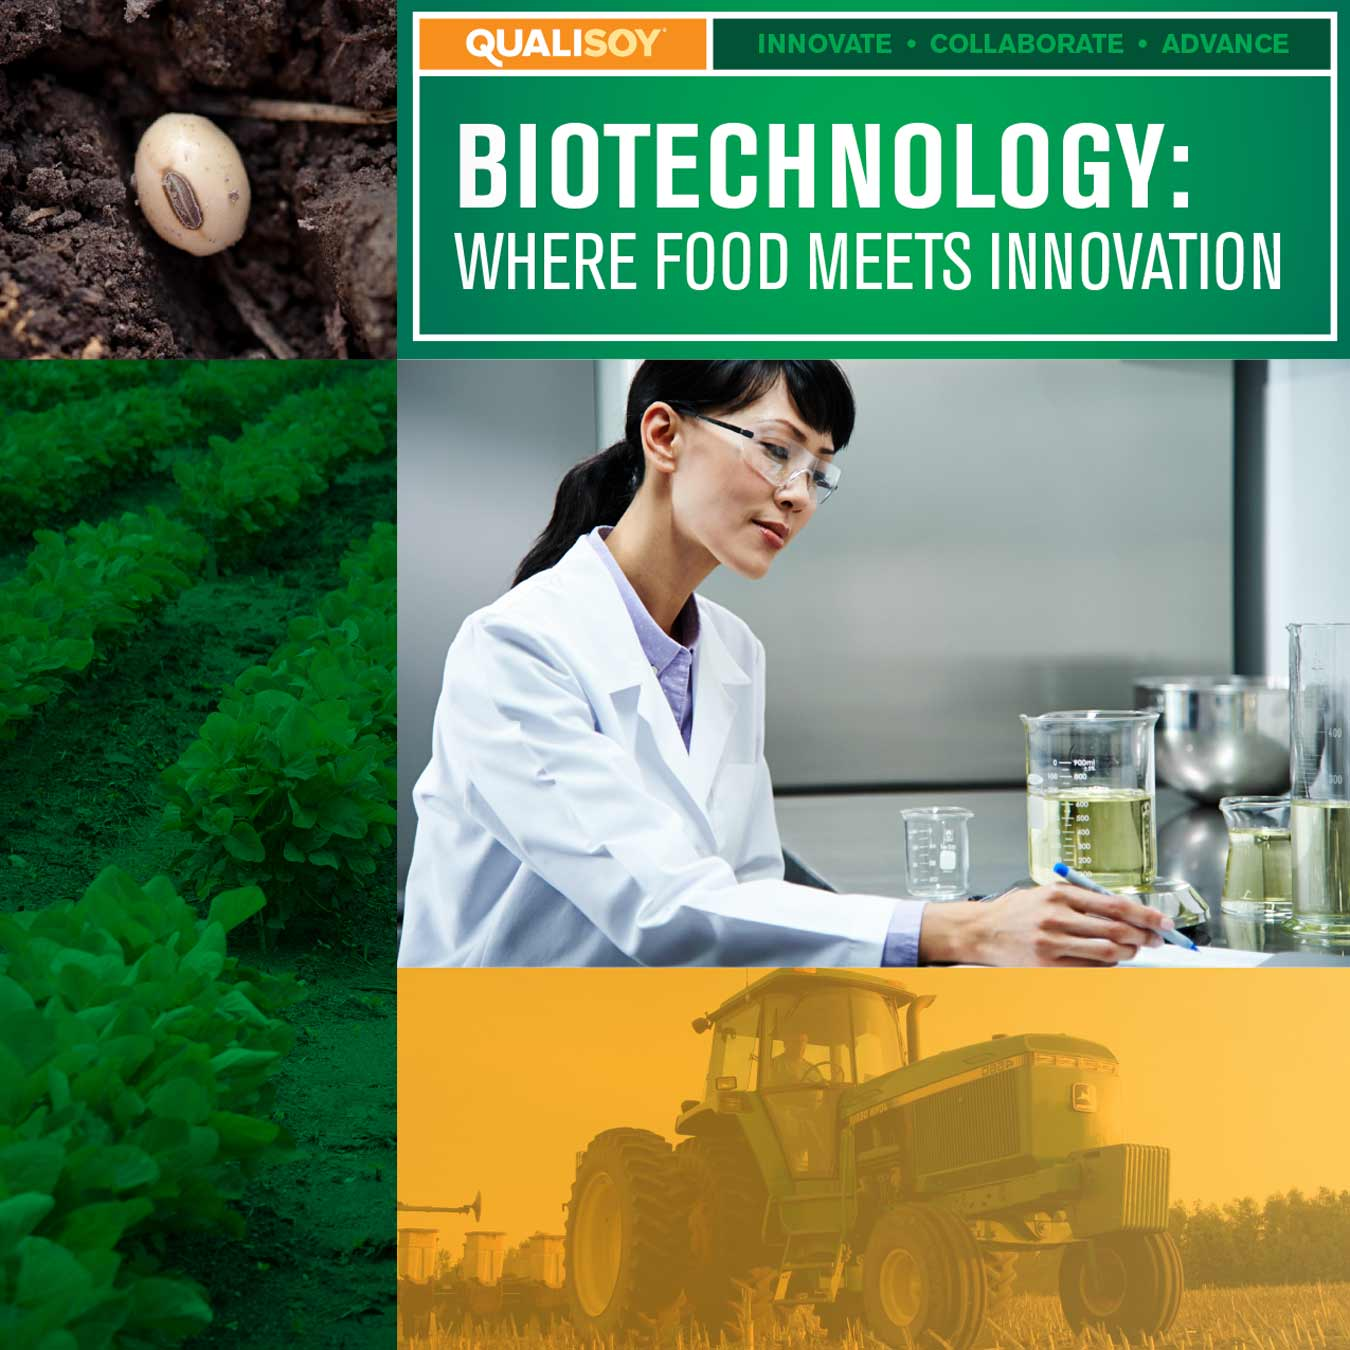 Biotechnology: Where Technology Meets Innovation